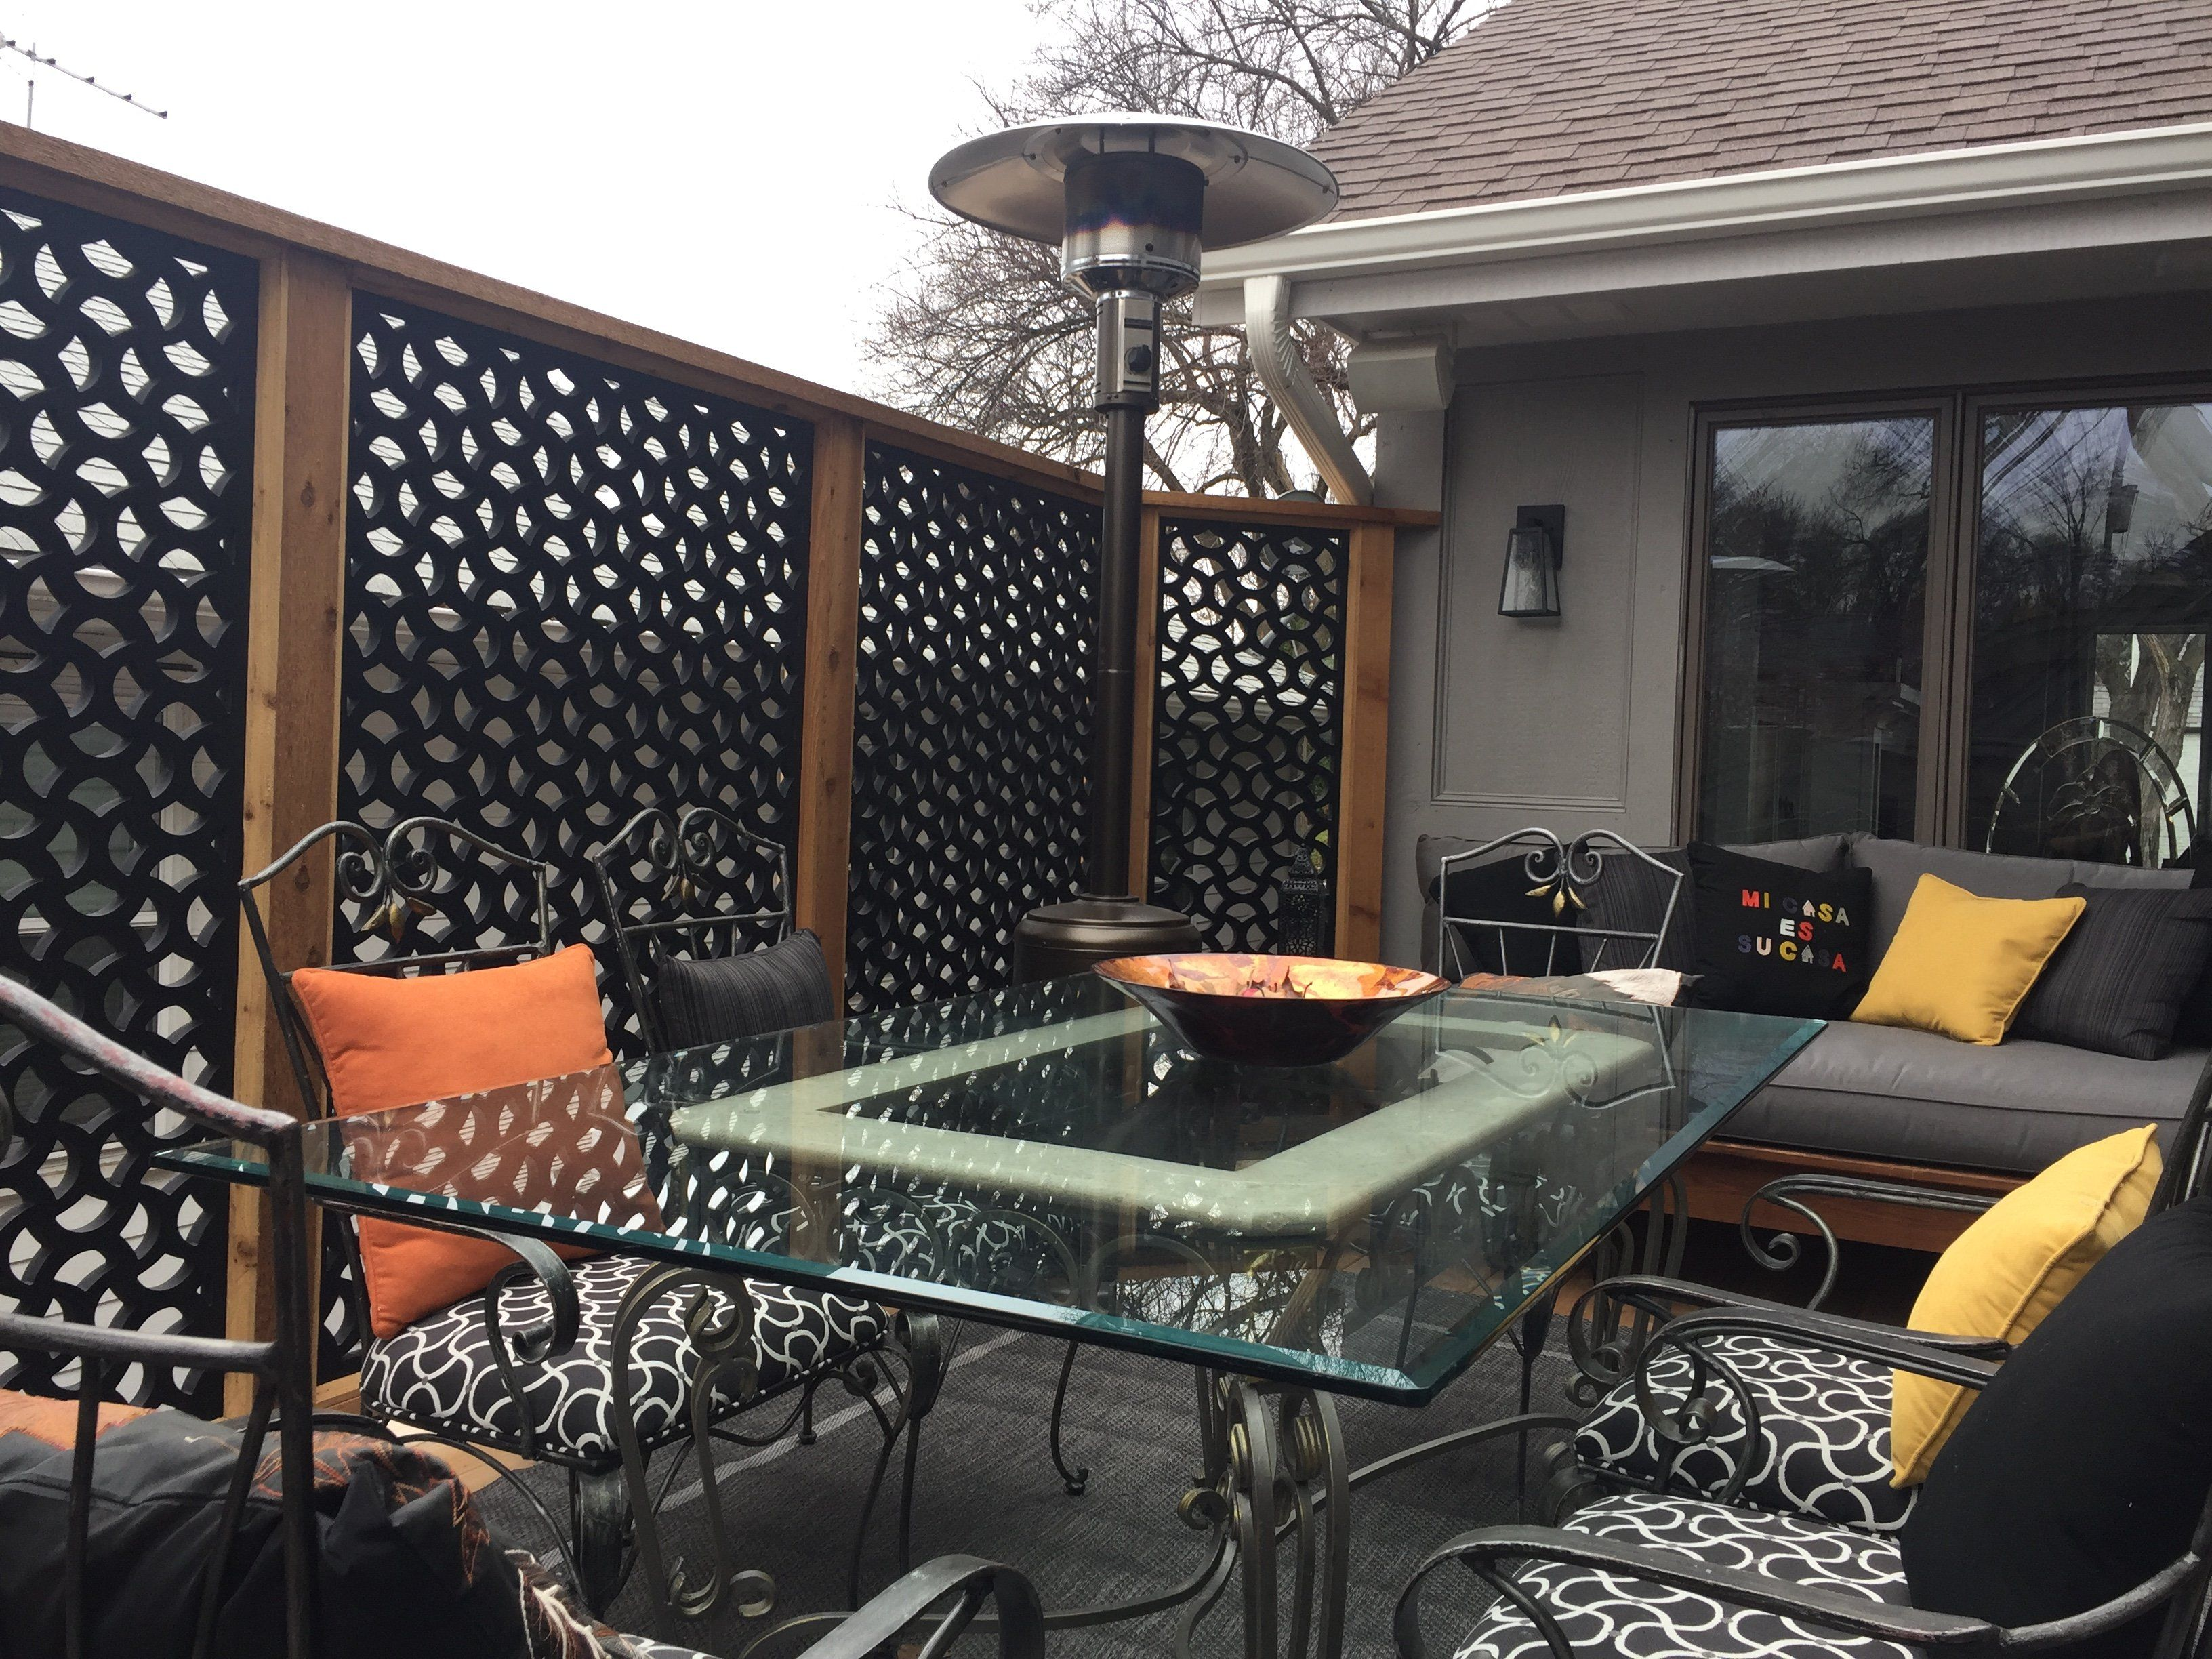 Are You Looking For Outdoor Lattice Designs For Your Fence